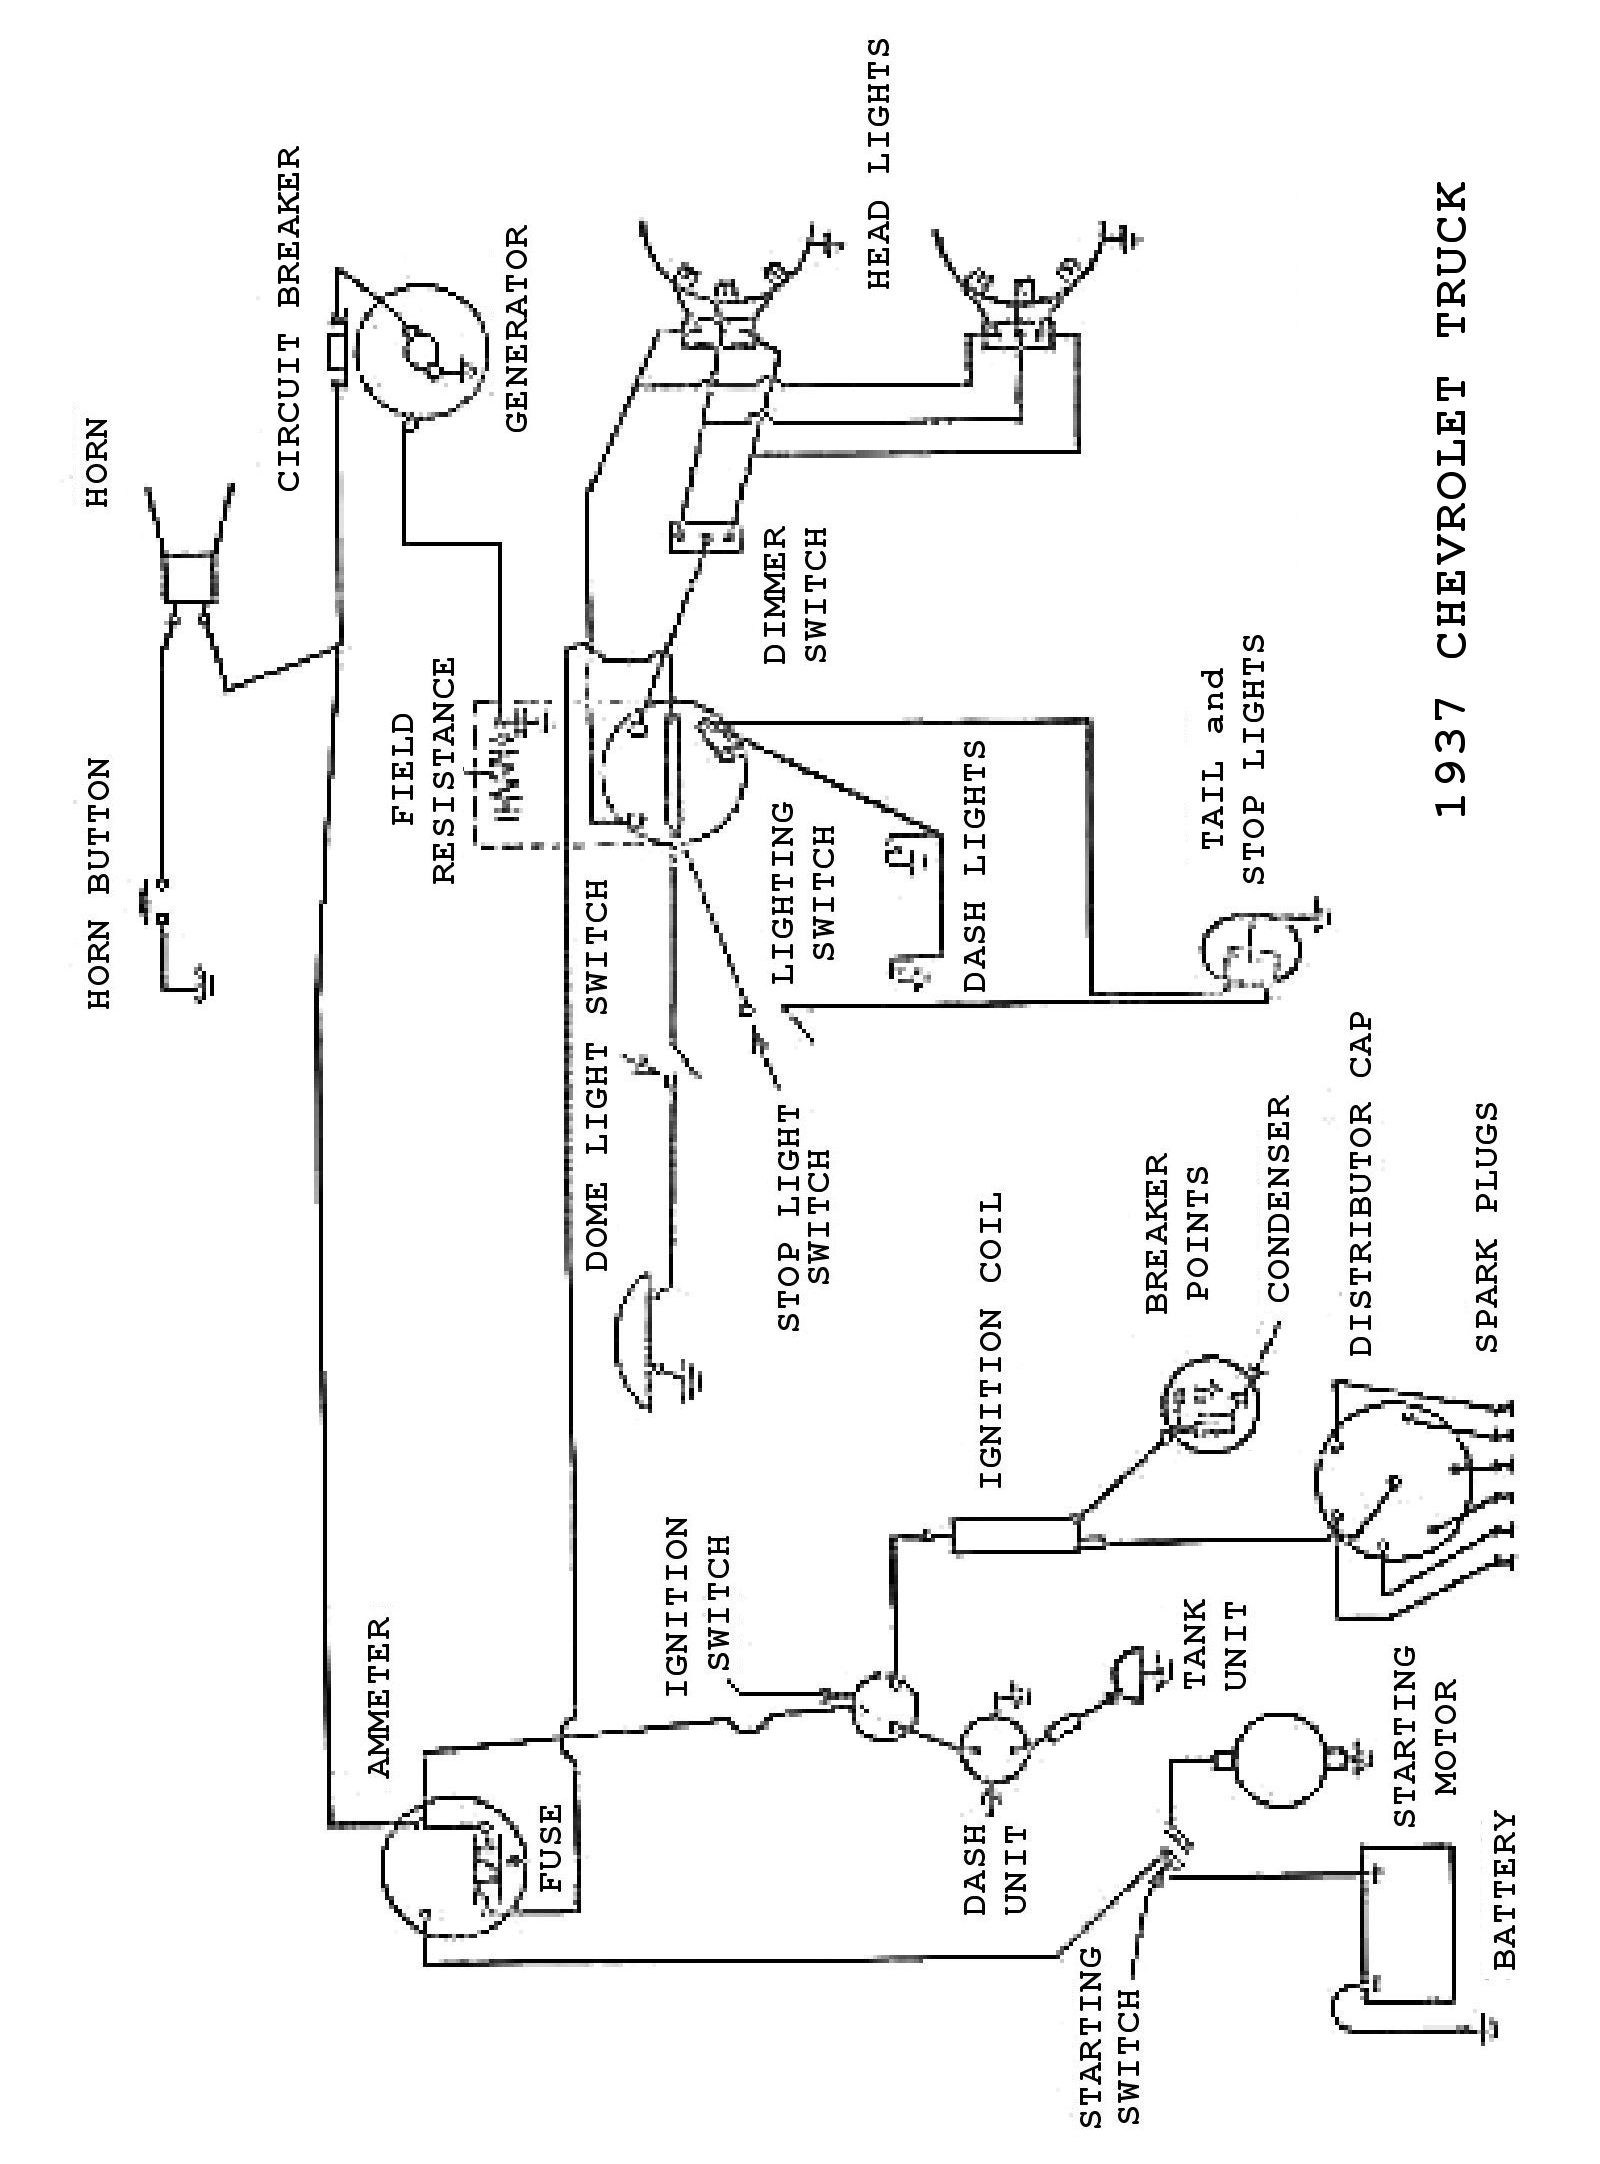 37truck chevy wiring diagrams 1929 Pontiac Sedan Model at gsmportal.co